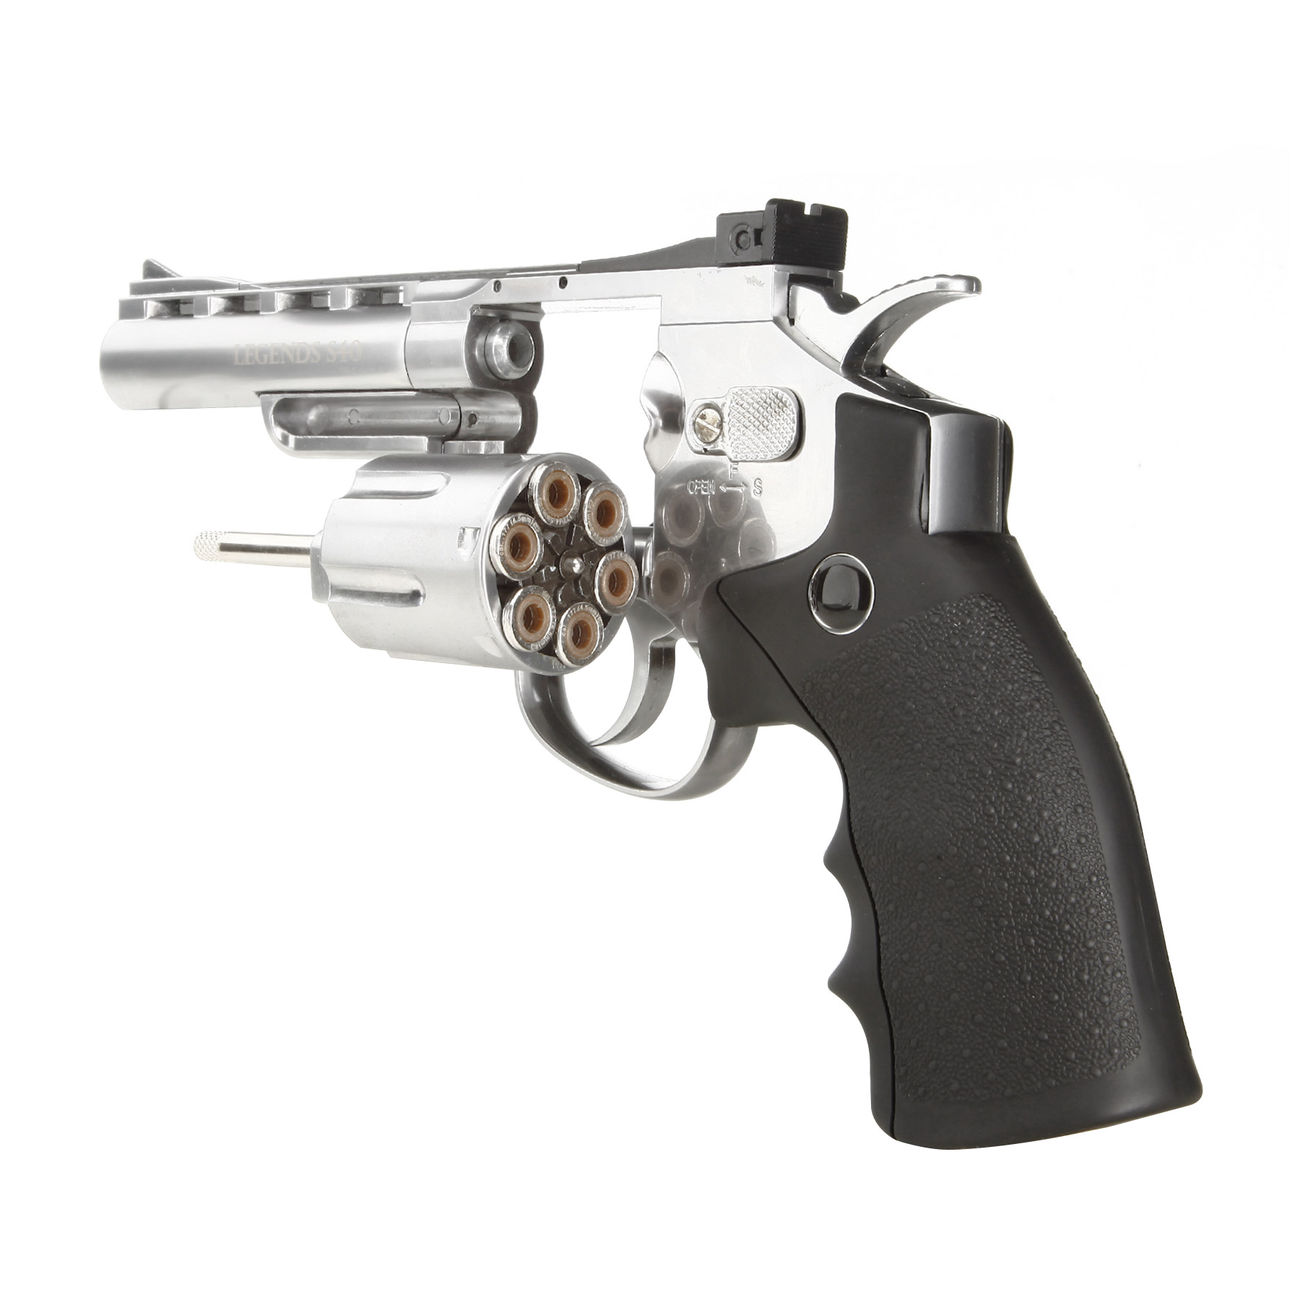 Legends S40 CO2 Revolver 4 Zoll Kal. 4,5mm Diabolo chrom Vollmetall 3